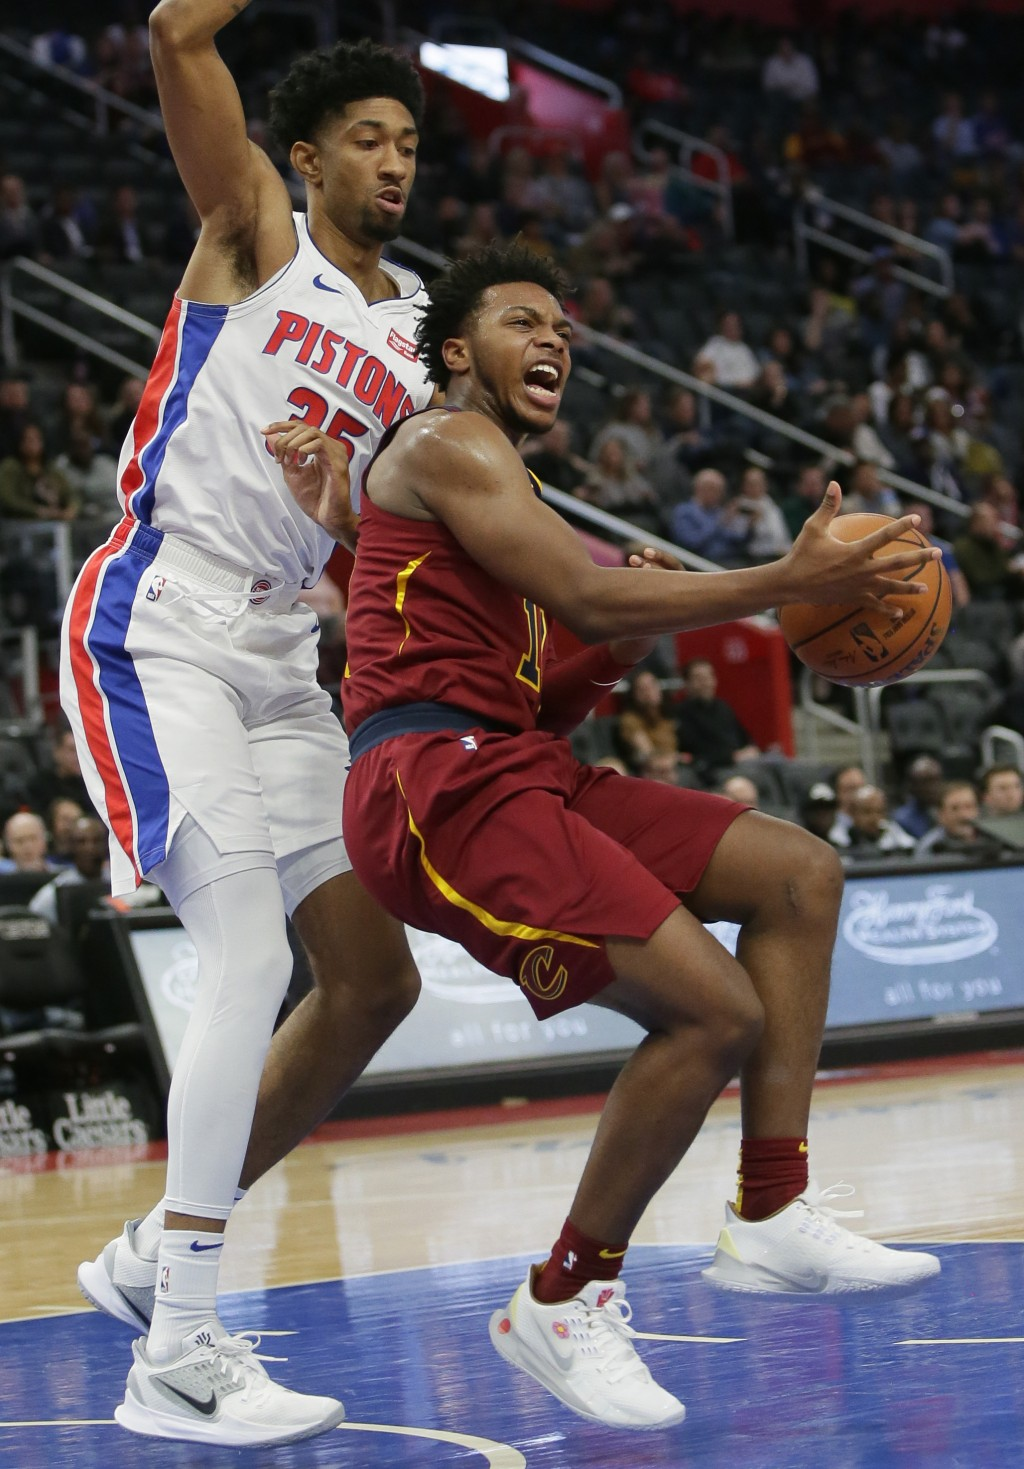 Cleveland Cavaliers guard Darius Garland (10) collides with Detroit Pistons forward Christian Wood (35) while going to the basket during the first hal...